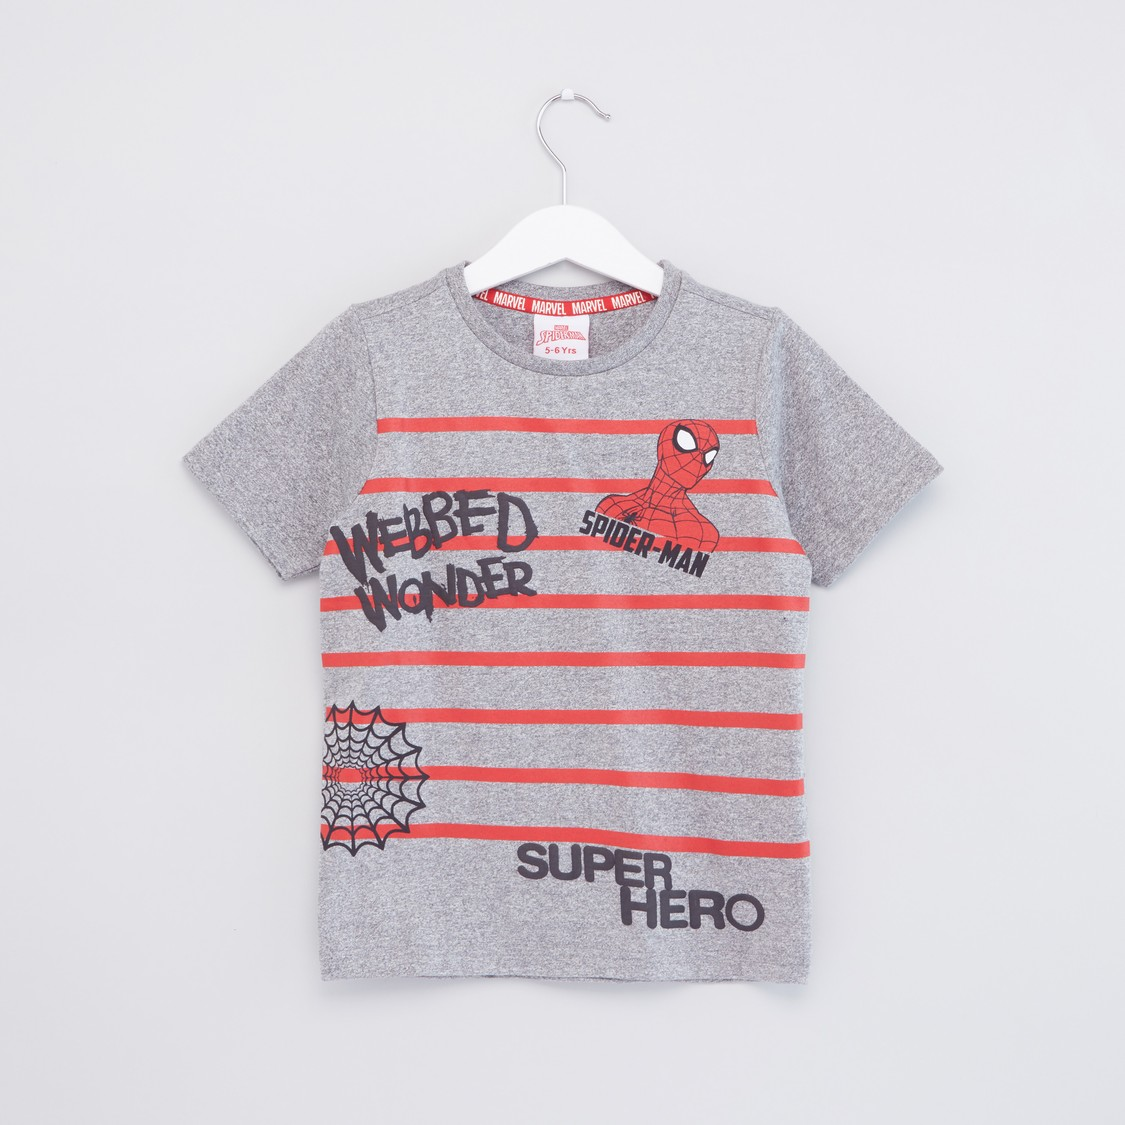 Spider-Man Printed T-shirt with Embossed Detail and Short Sleeves